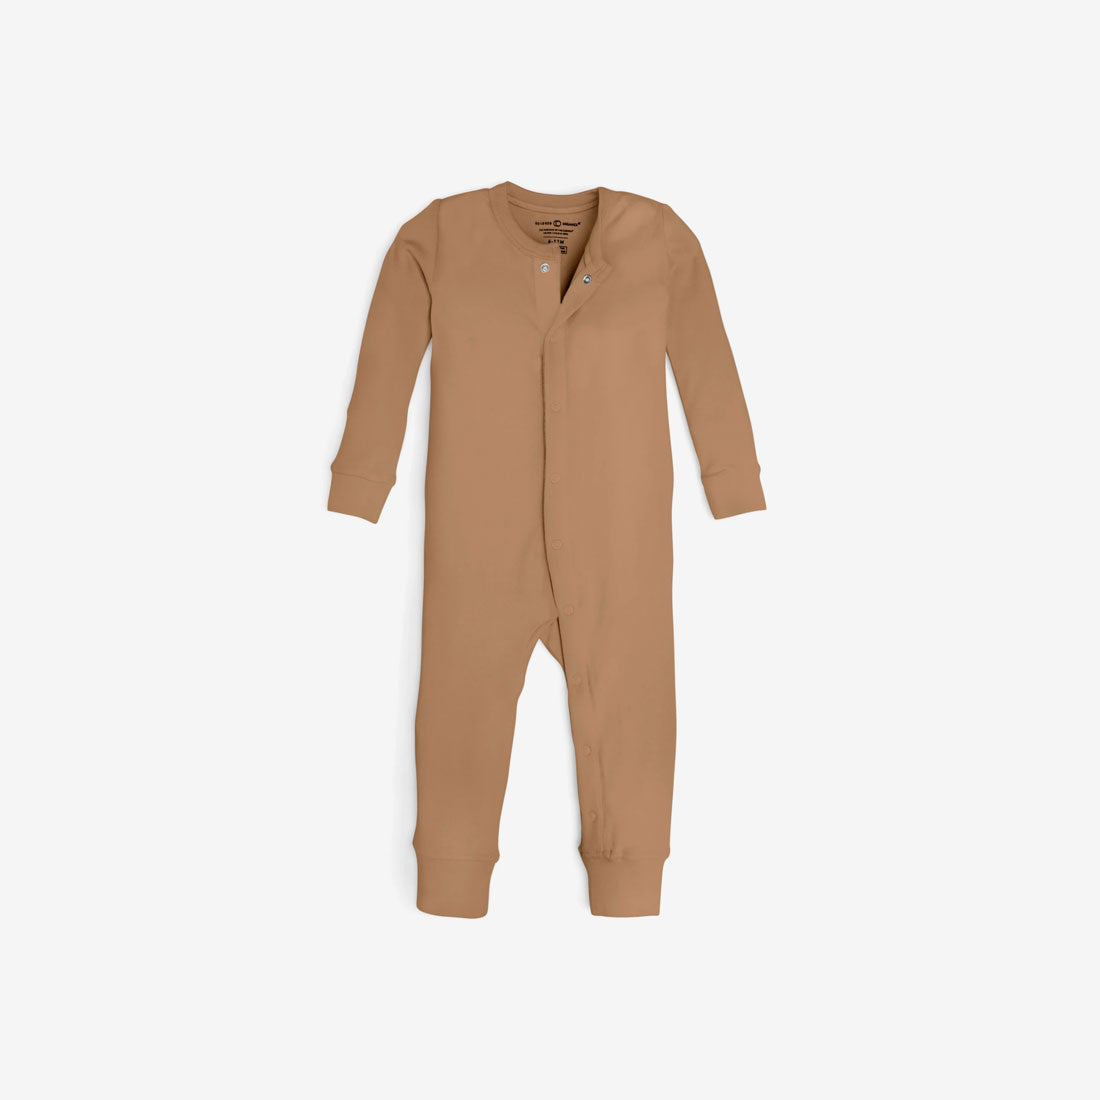 Emerson Organic Cotton Coverall Sleeper - Ginger